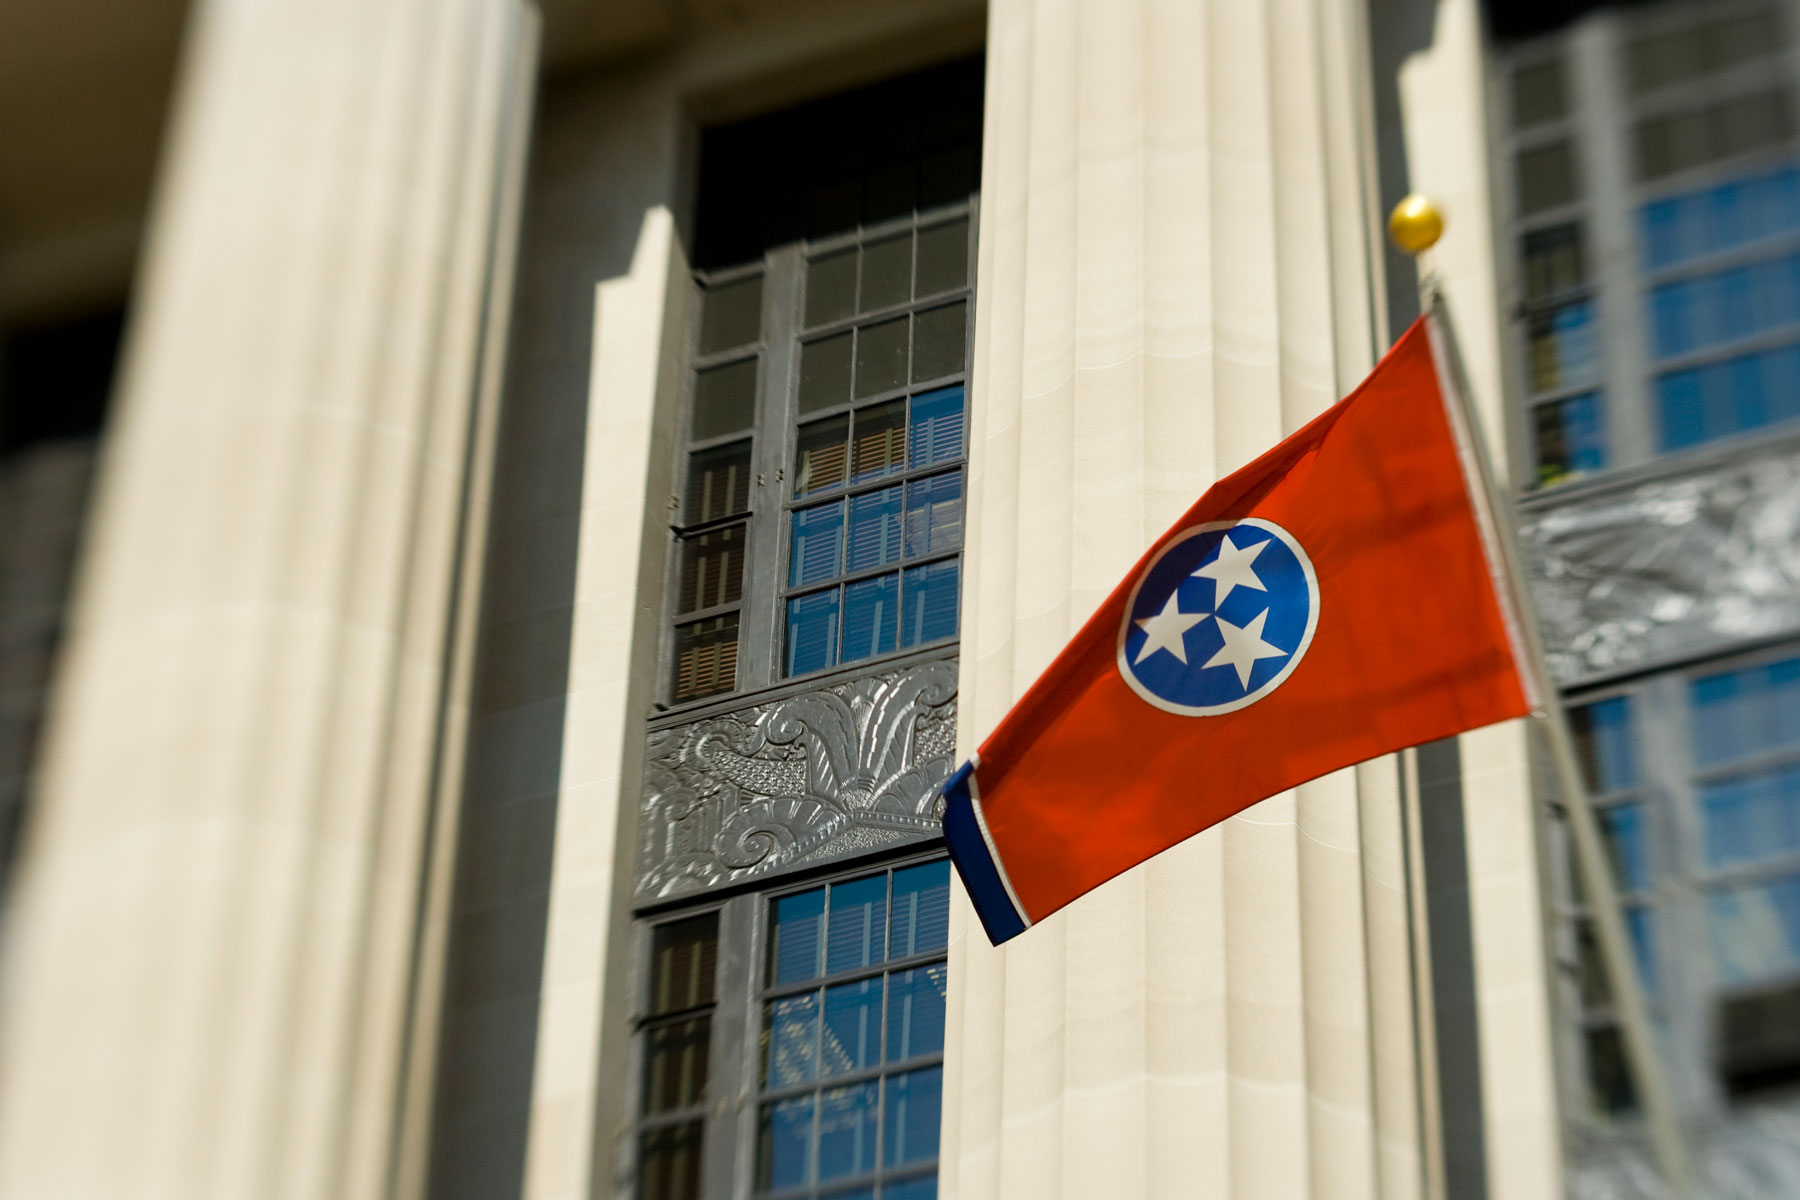 Tennessee state flag in front of government building